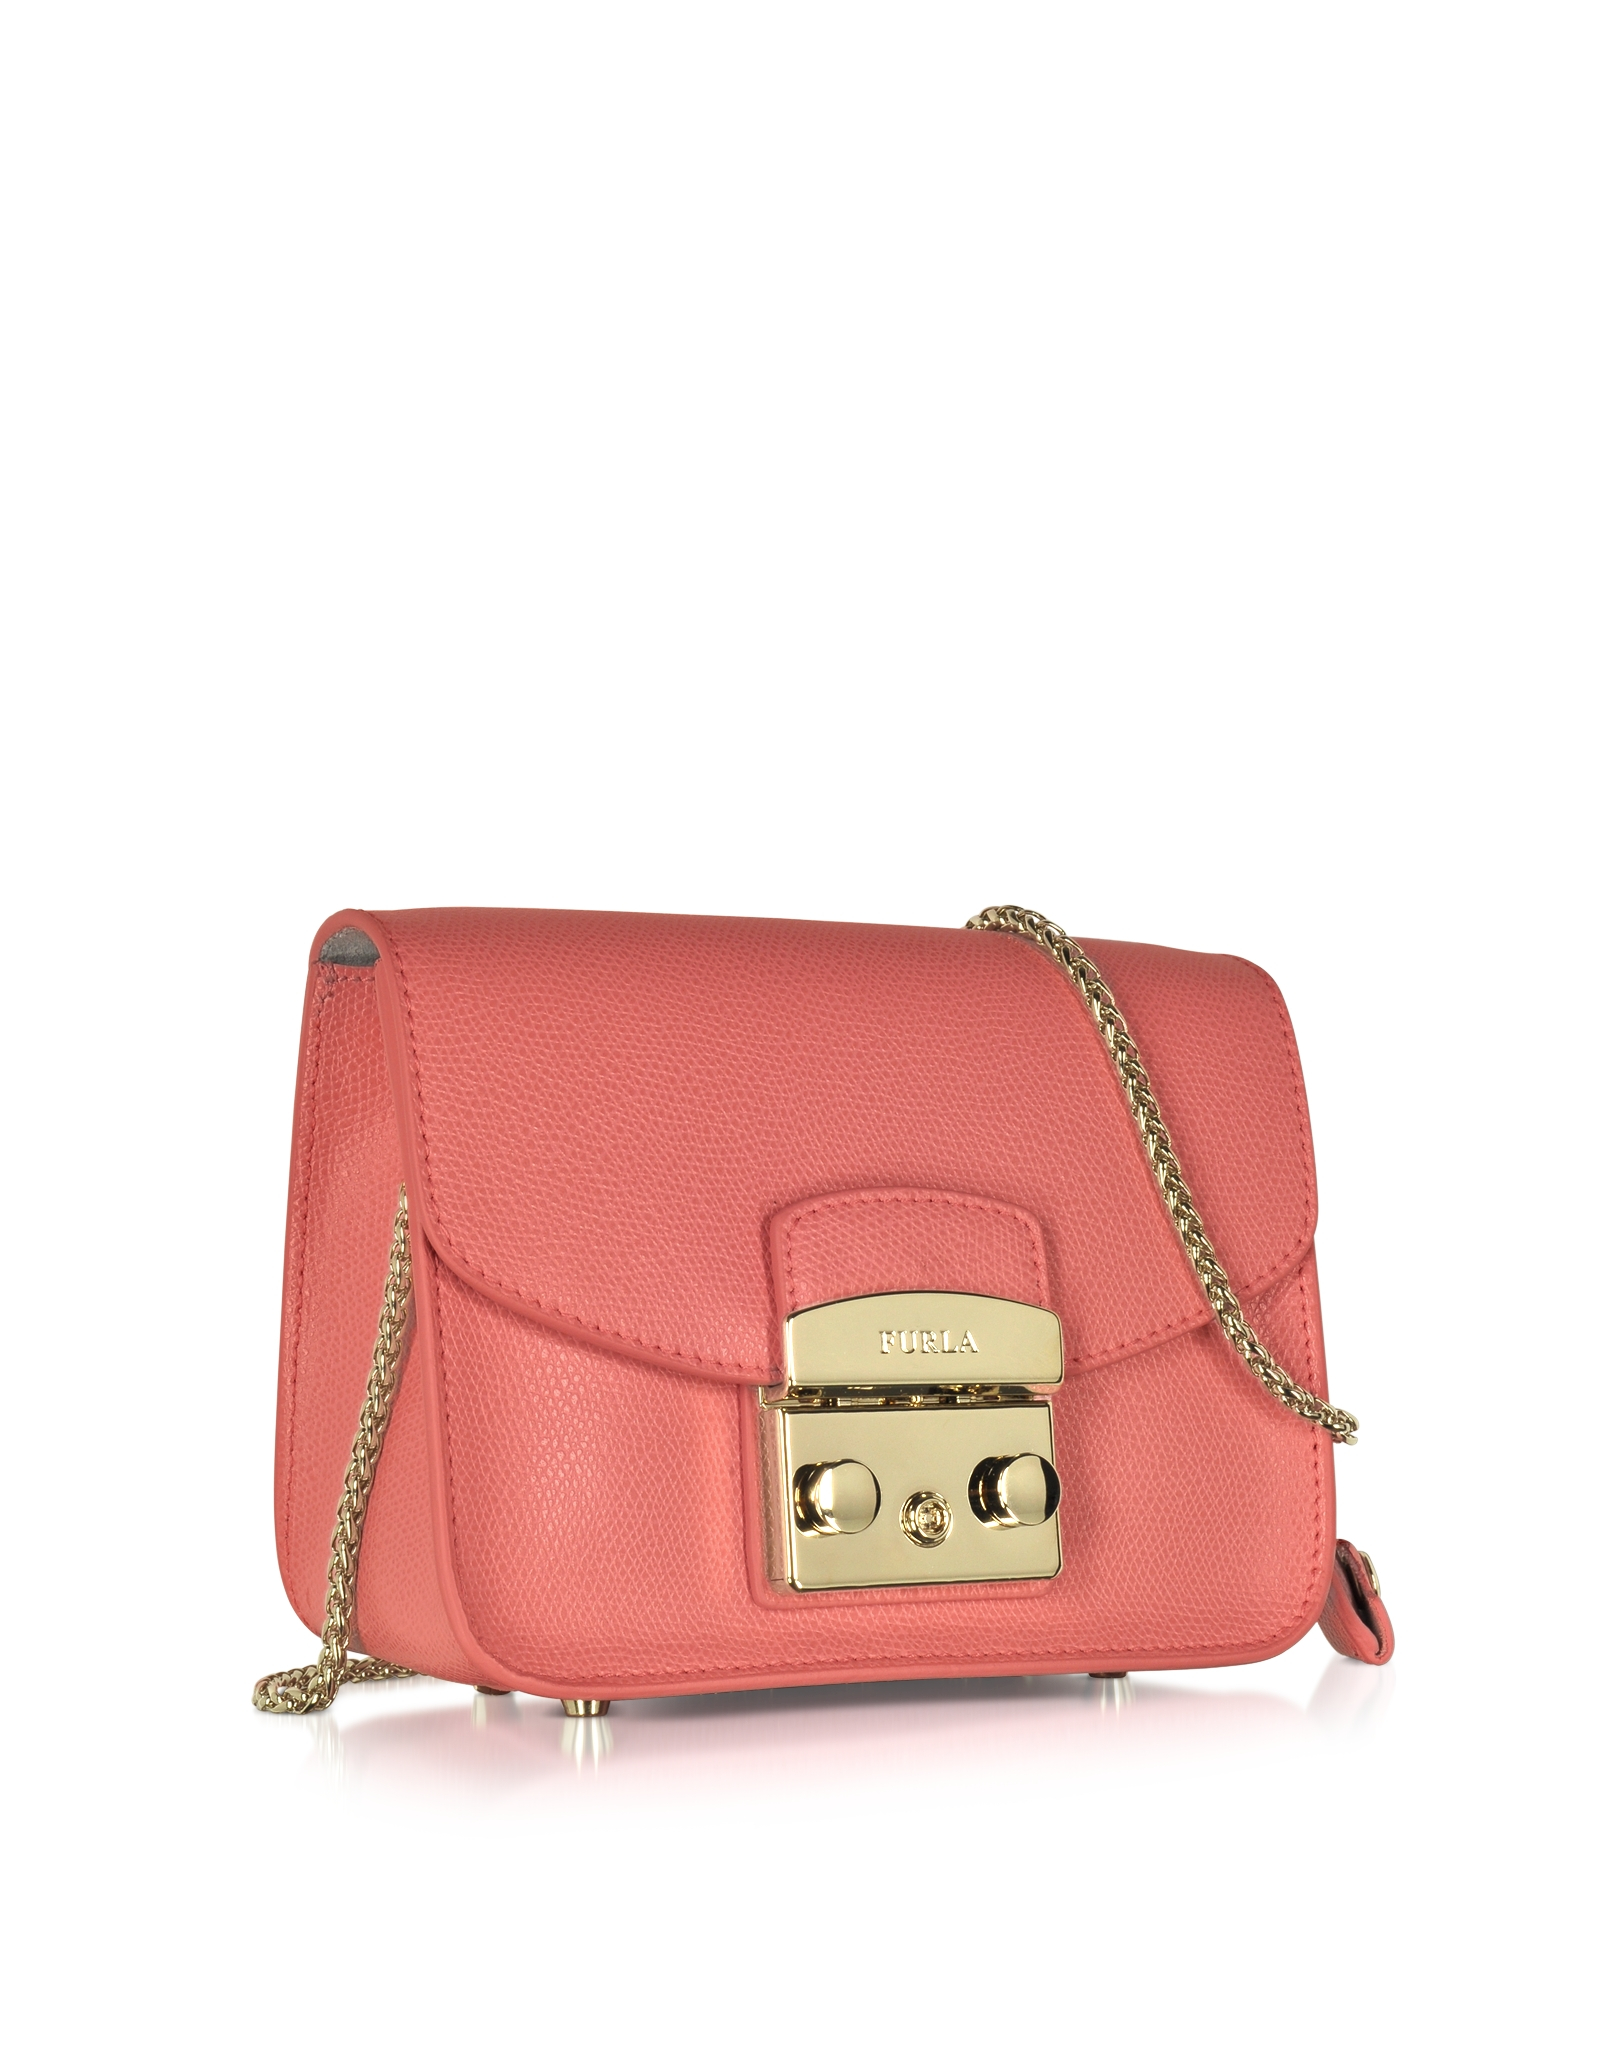 Furla Metropolis Coral Leather Shoulder Bag in Pink